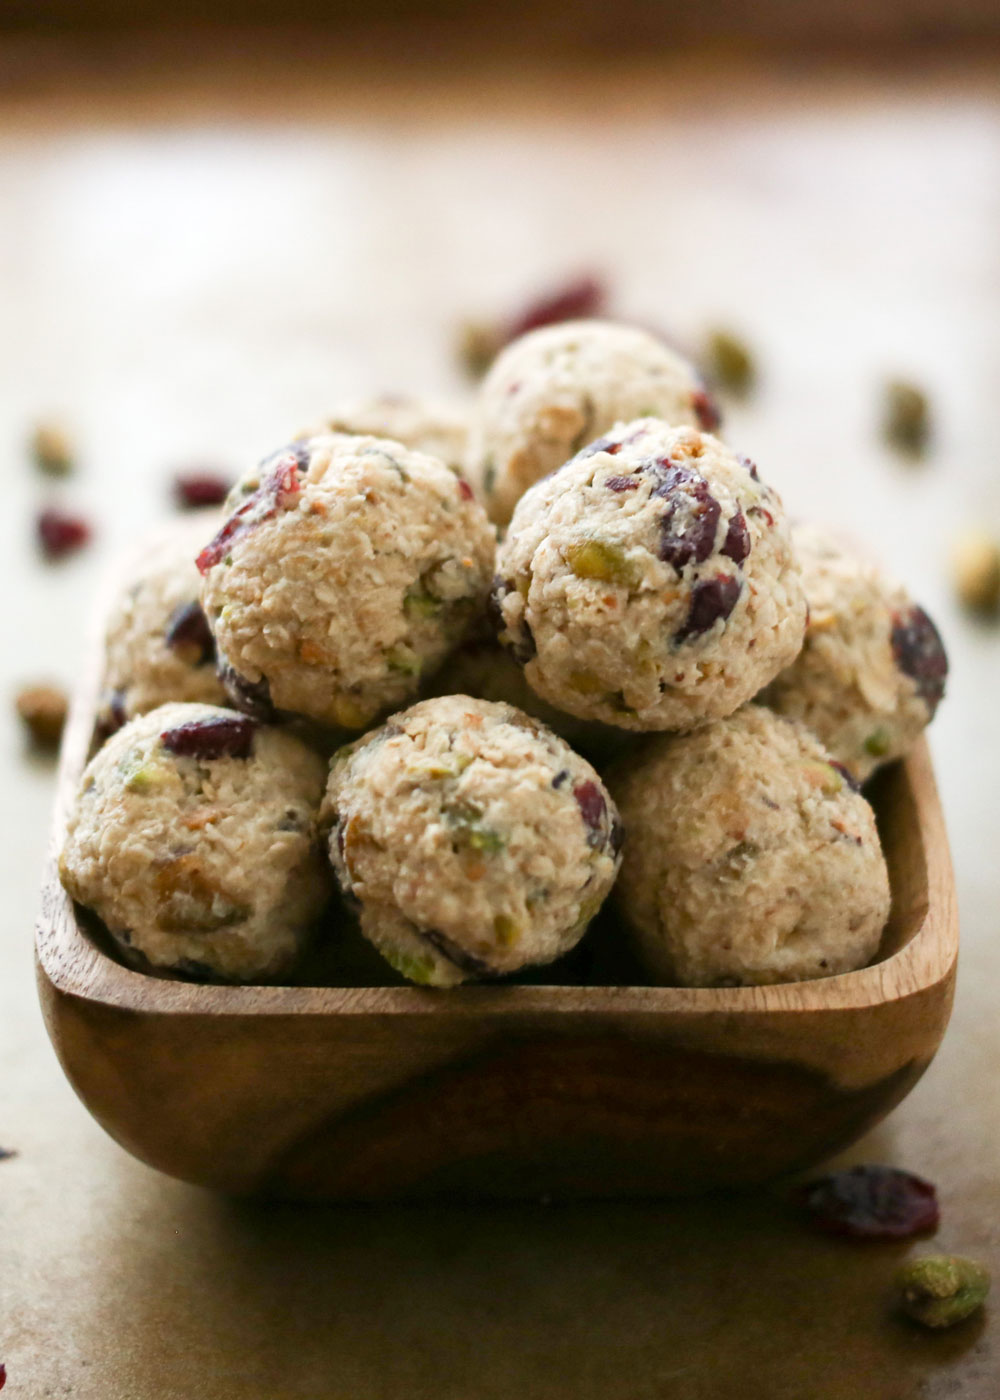 Cranberry Pistachio Cookie Dough Bites are perfect for snacking or for dessert! - recipe by Barefeet In The Kitchen